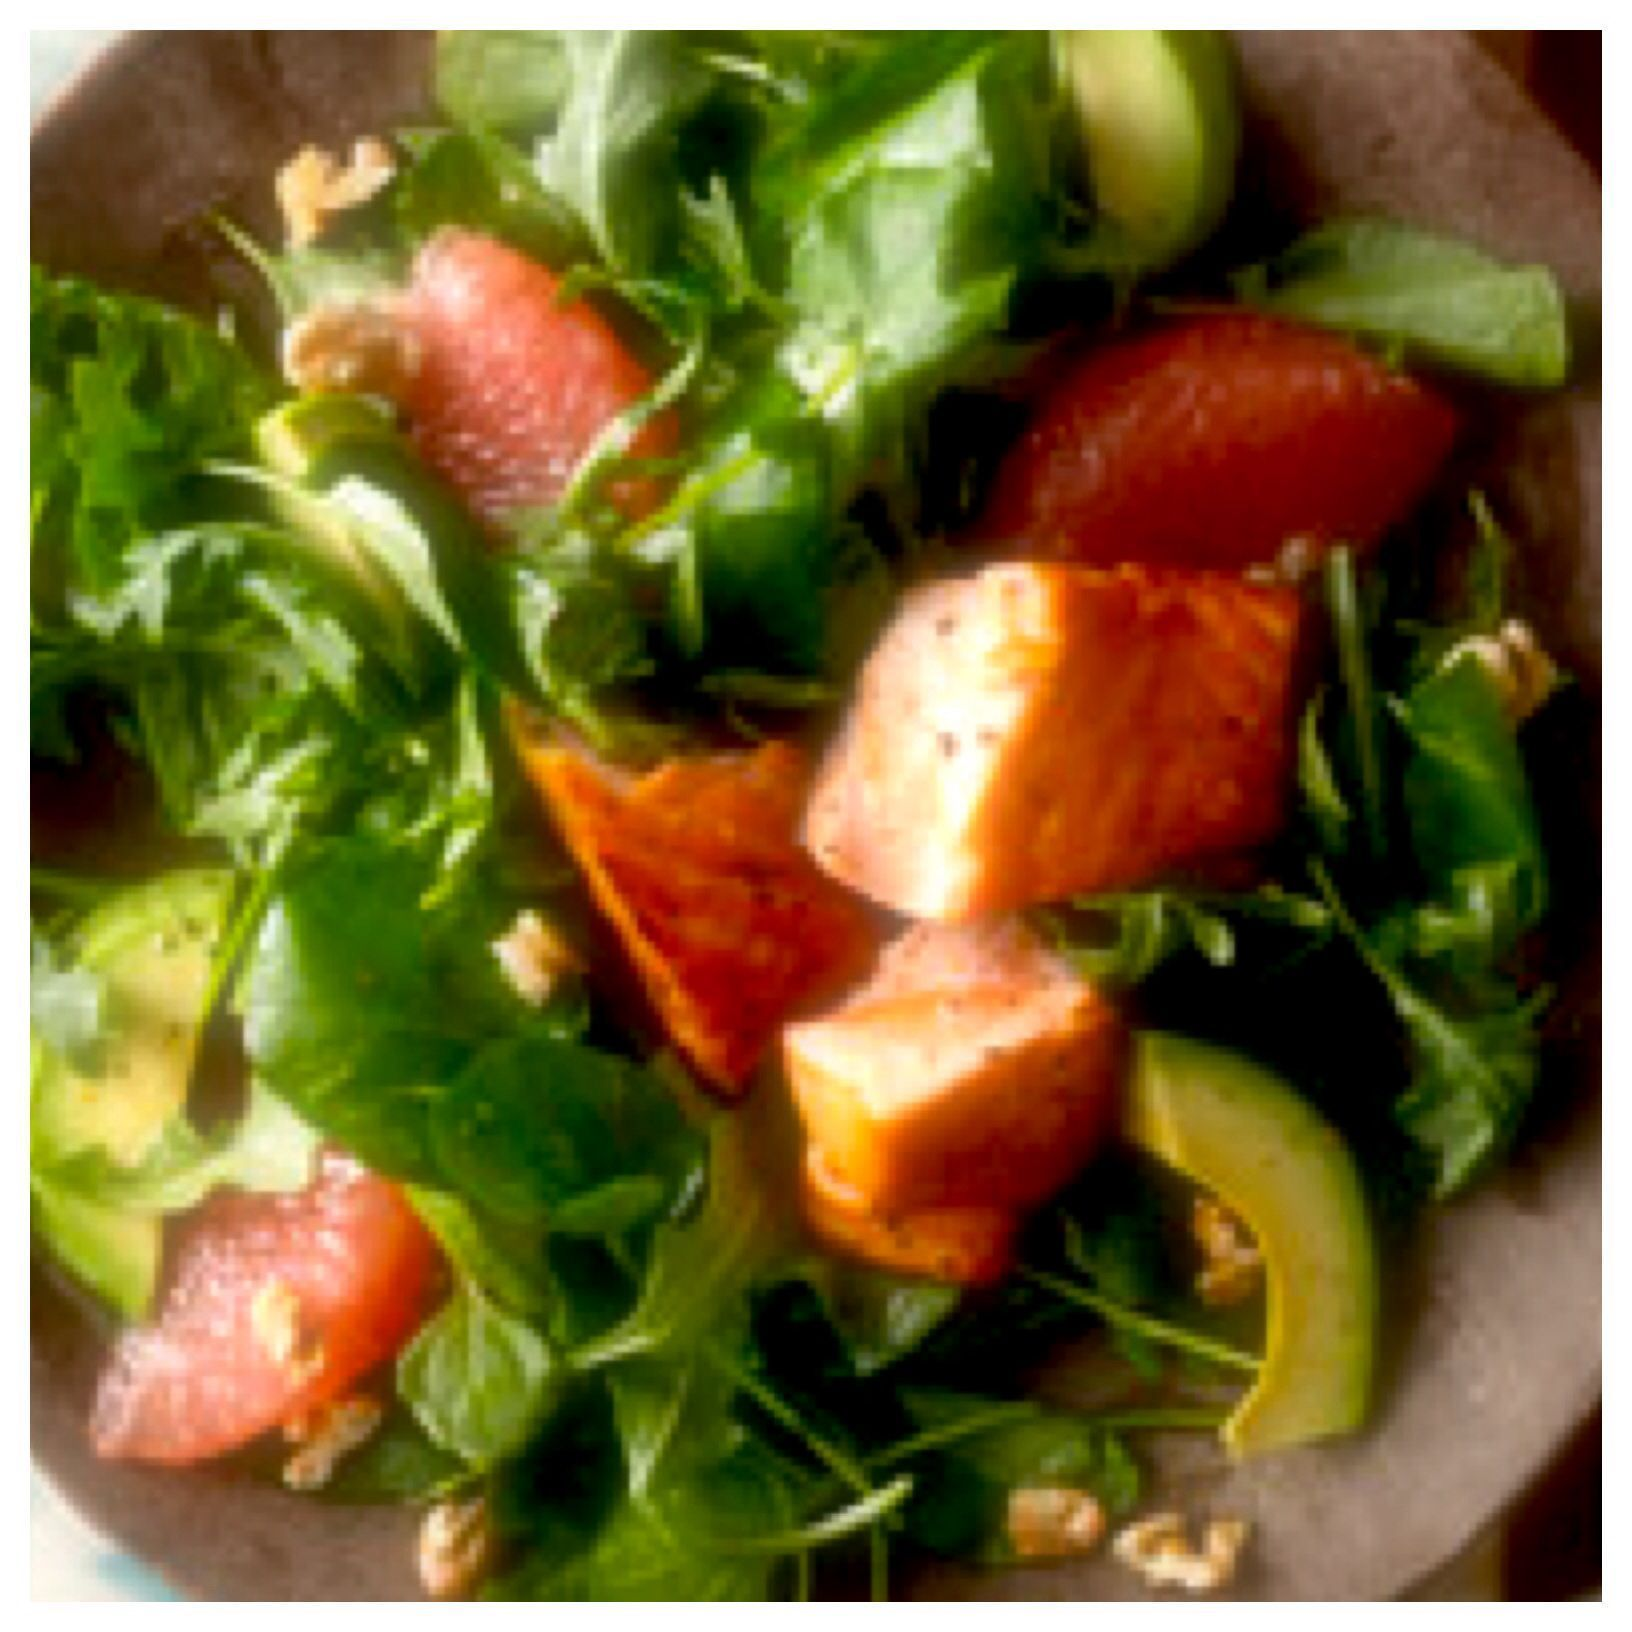 Avocado Grapefruit Salad with Seared Salmon 1 large grapefruit 2 bunches arugula 1 ripe avocado sliced 2 tbsp lemon juice 2 tbsp olive oil 1/2 tsp salt 1/2 tsp pepper 3 salmon fillets  1/4 c walnuts chopped Peel & segment grapefruit. Toss grapefruit with arugula & avocado; place on 4 plates. whisk lemon juice, oil, and 1/4 tsp salt & pepper. Salt & pepper salmon. Cook for 8 minutes Cut into pieces; top salads add dressing & walnuts. Nutrition Information Calories per serving360 #walnutsnutrition #walnutsnutrition